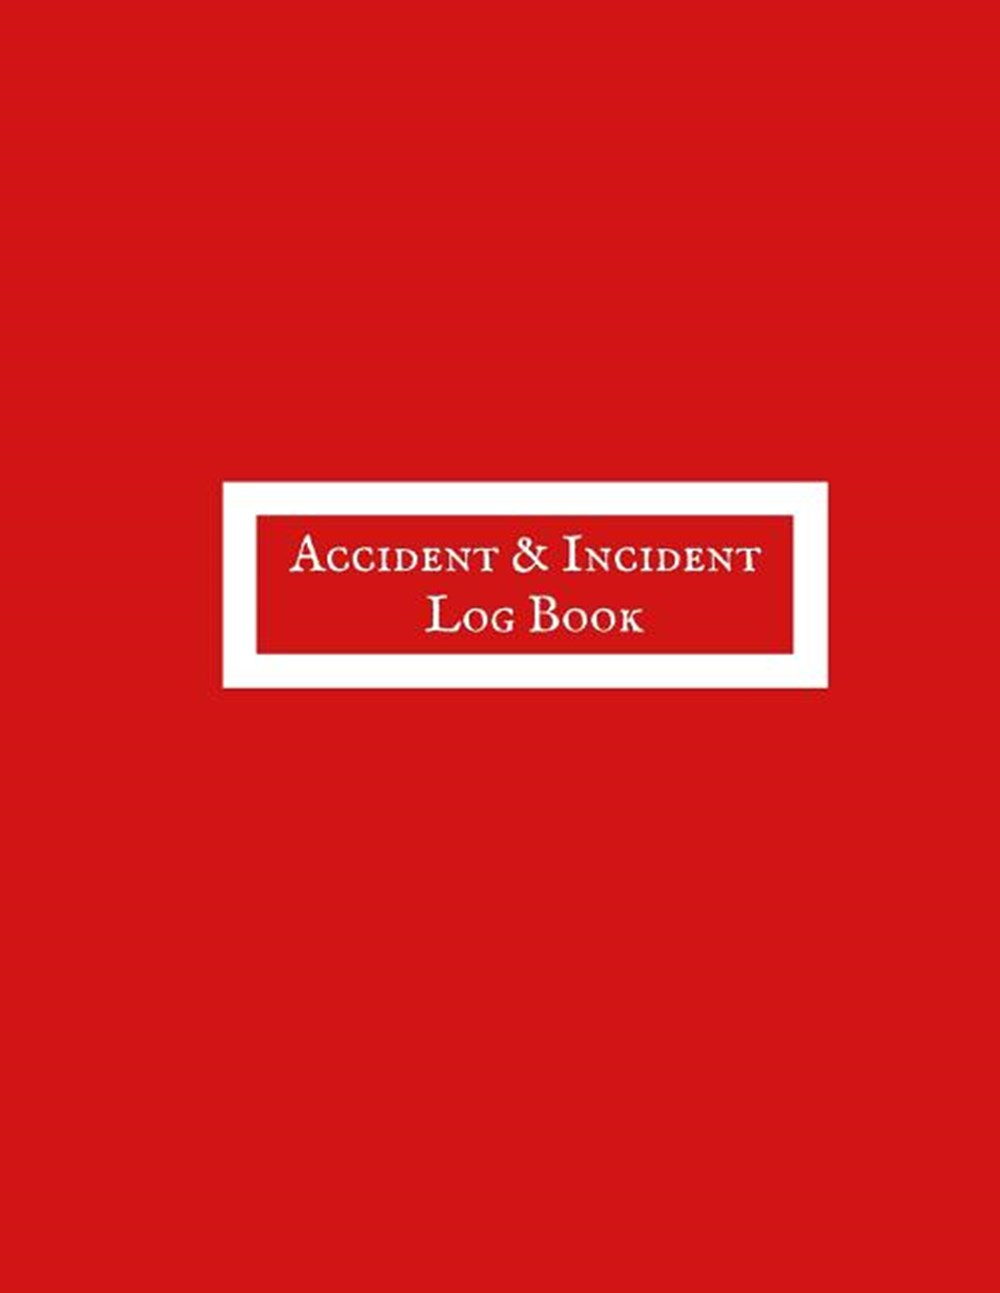 Accident & Incident Log Book Incident & Accident Record Log Book Health & Safety Note Book For, Offi